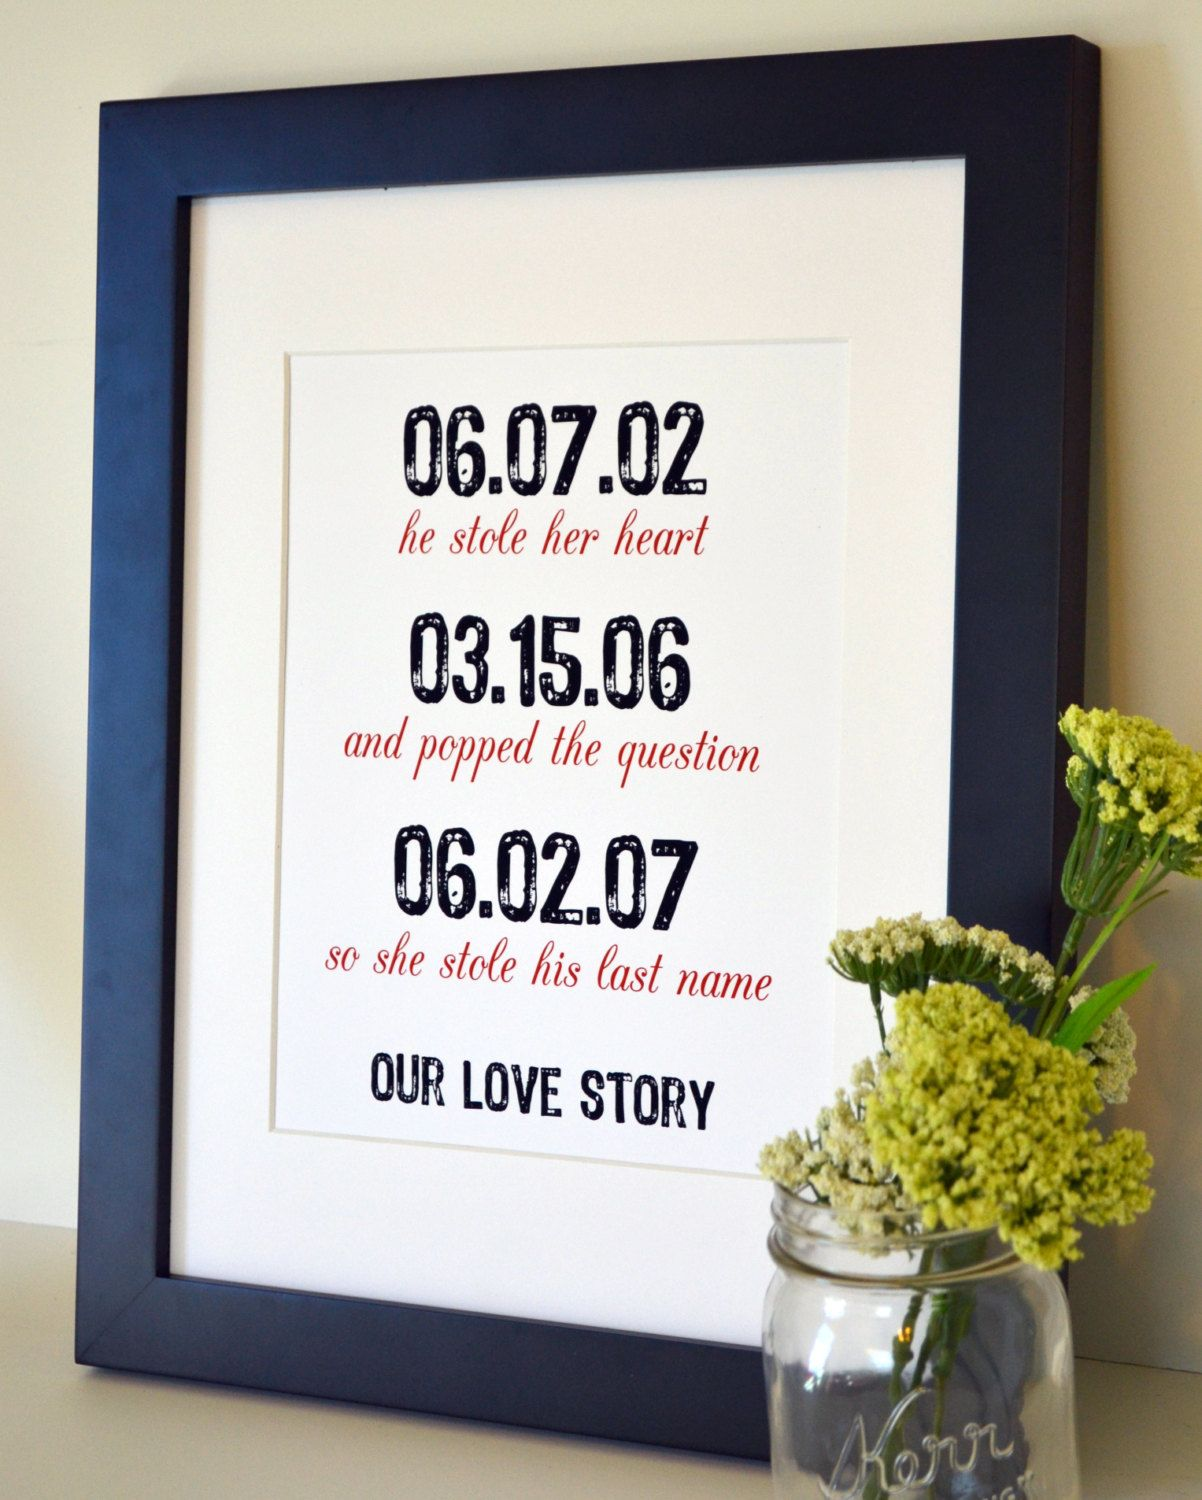 1st Wedding Anniversary Gifts Husband : anniversary gifts for husband anniversary ideas love quote for husband ...